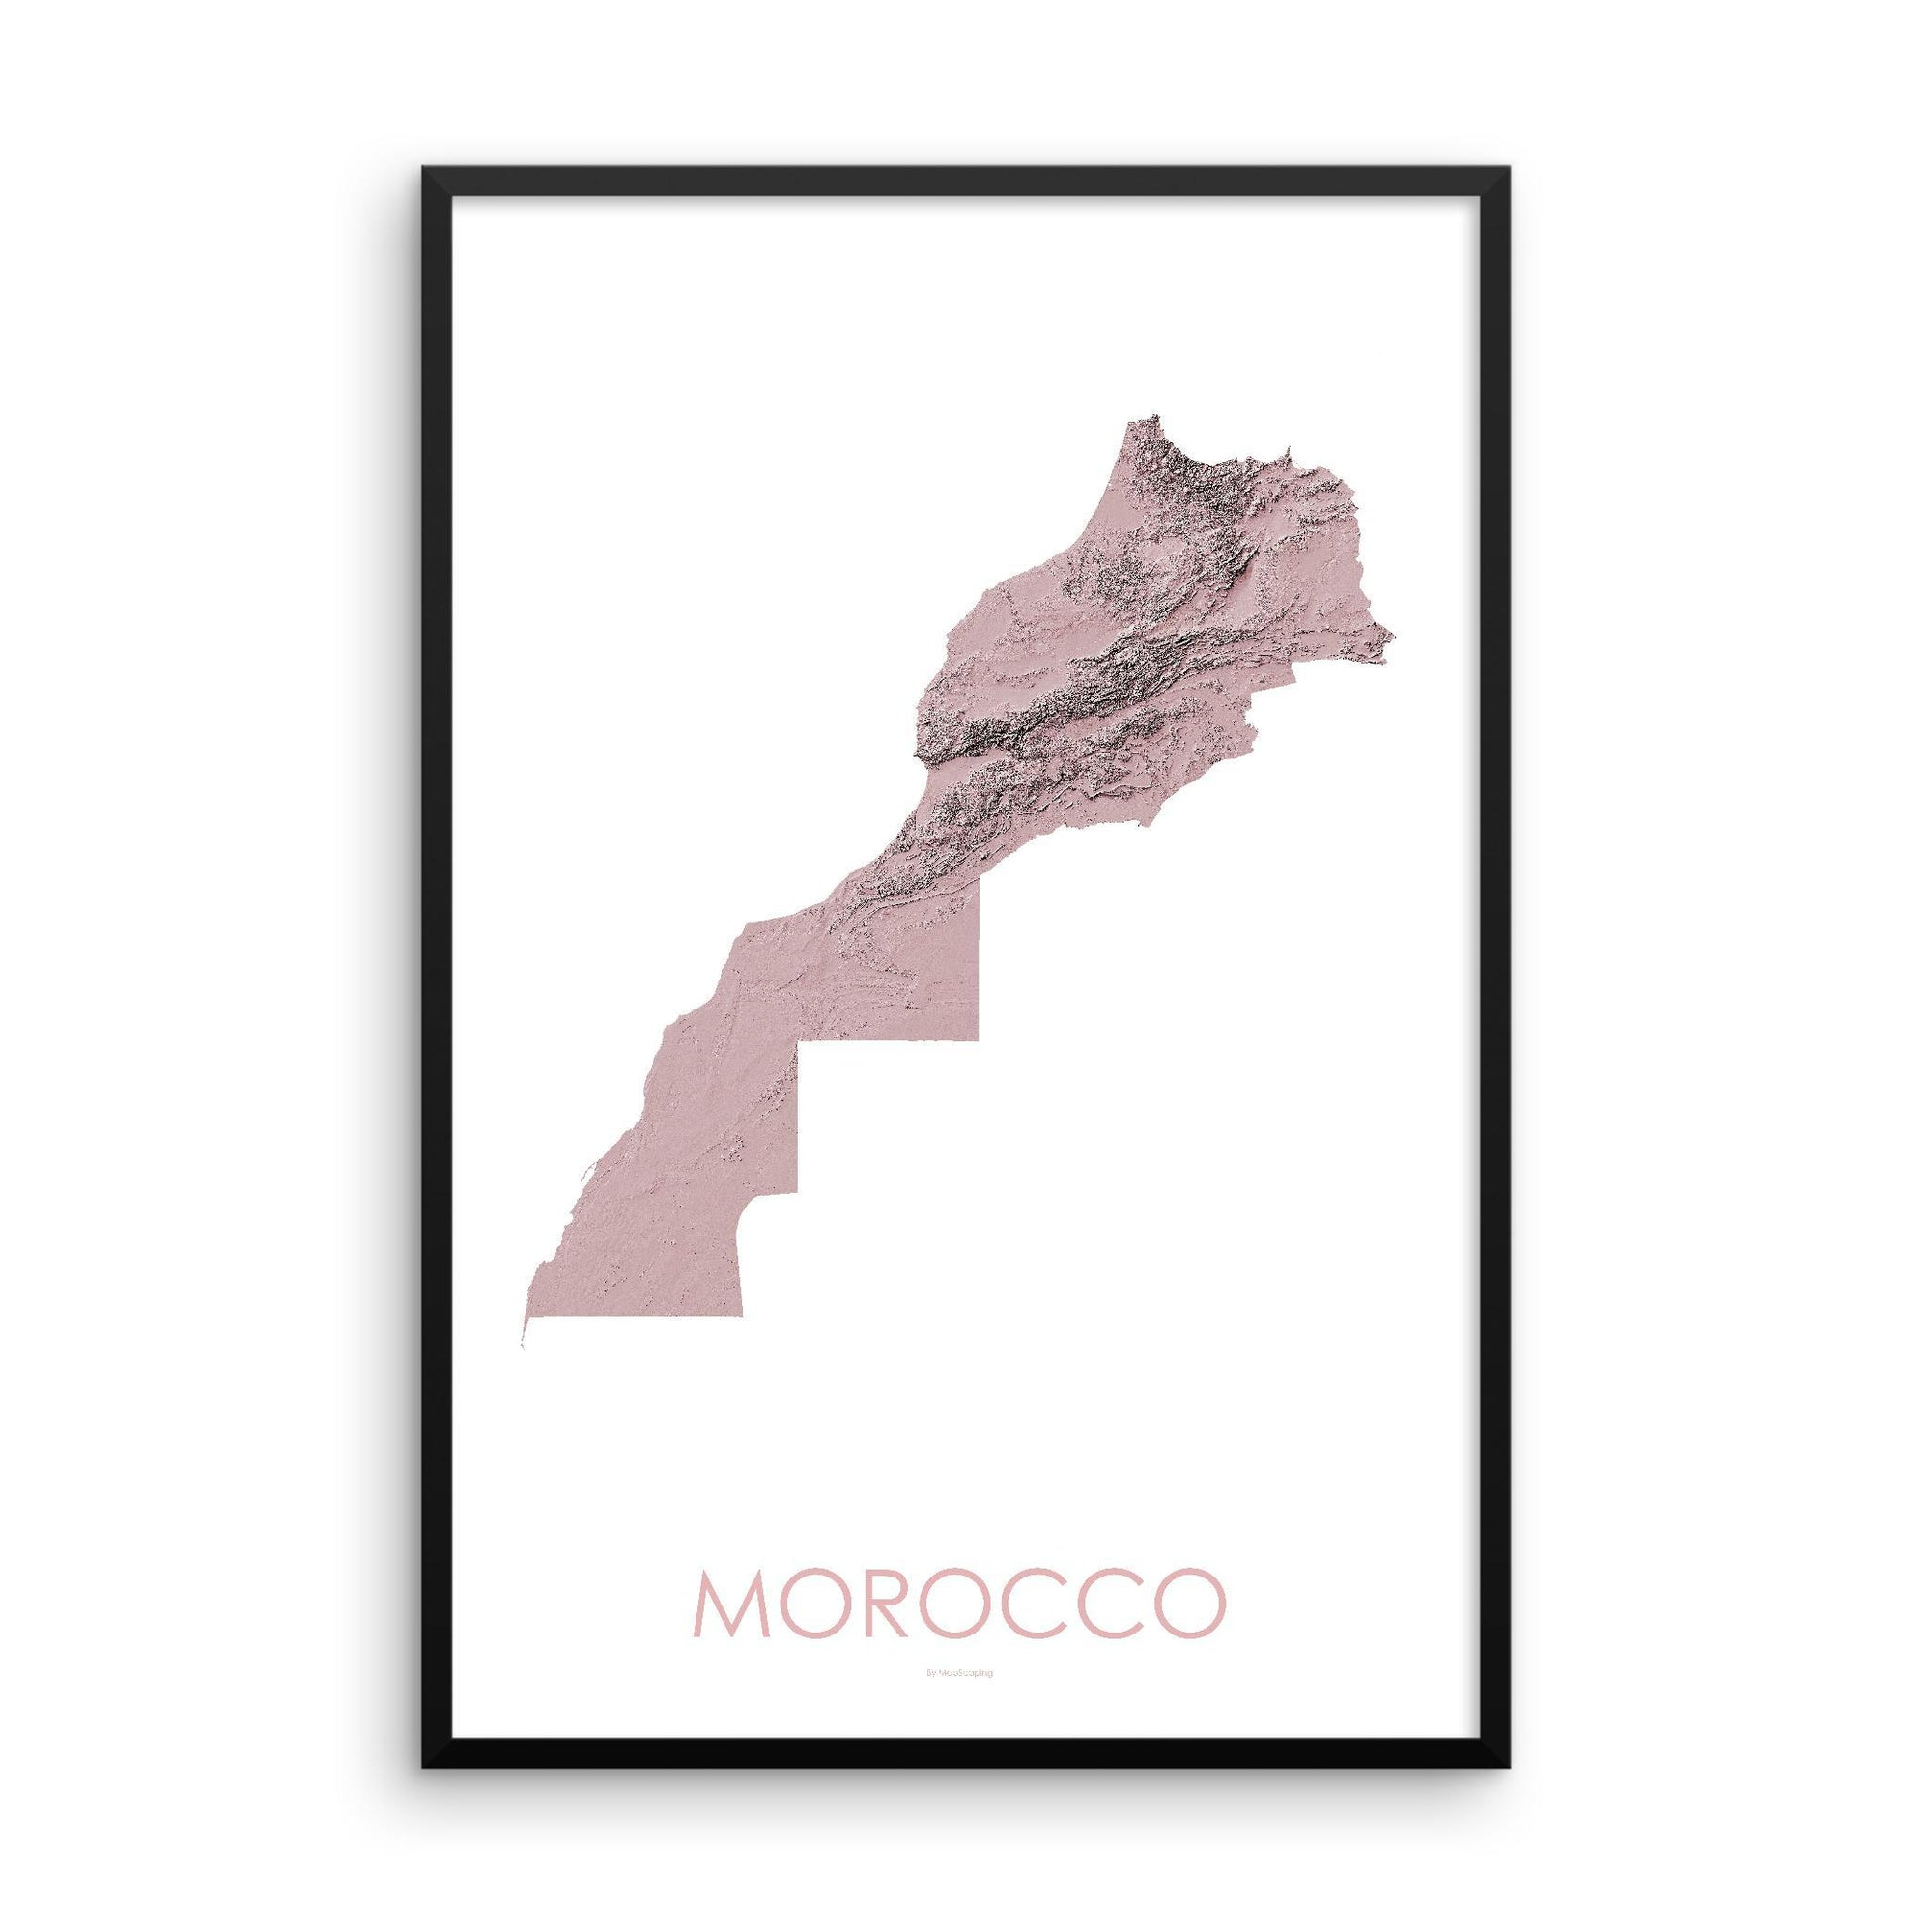 Morocco Poster 3D Rose-topographic wall art map by MapScaping